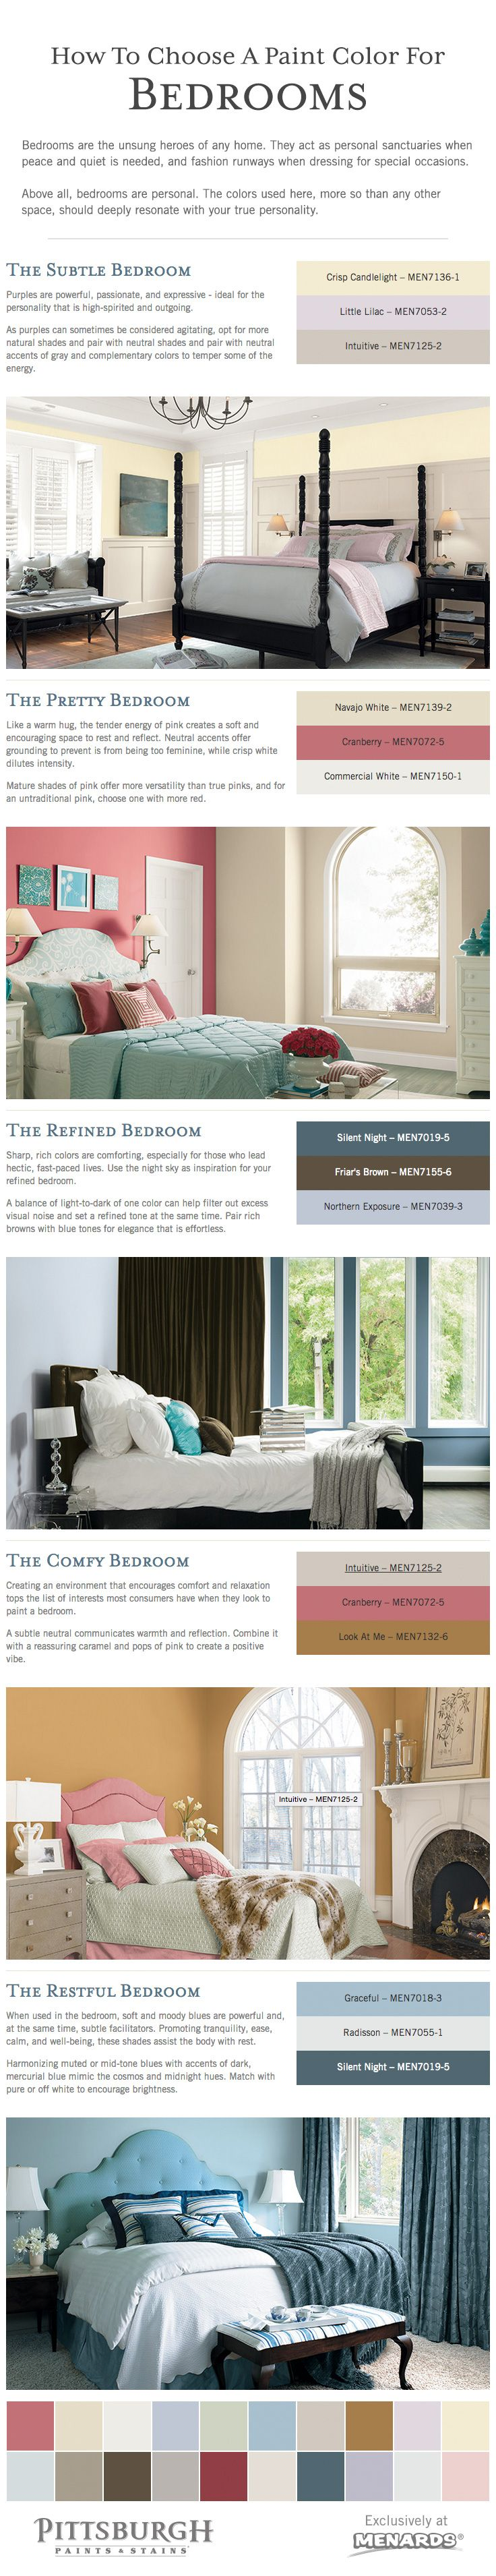 how to choose a paint color for a bedroom tips above all bedrooms